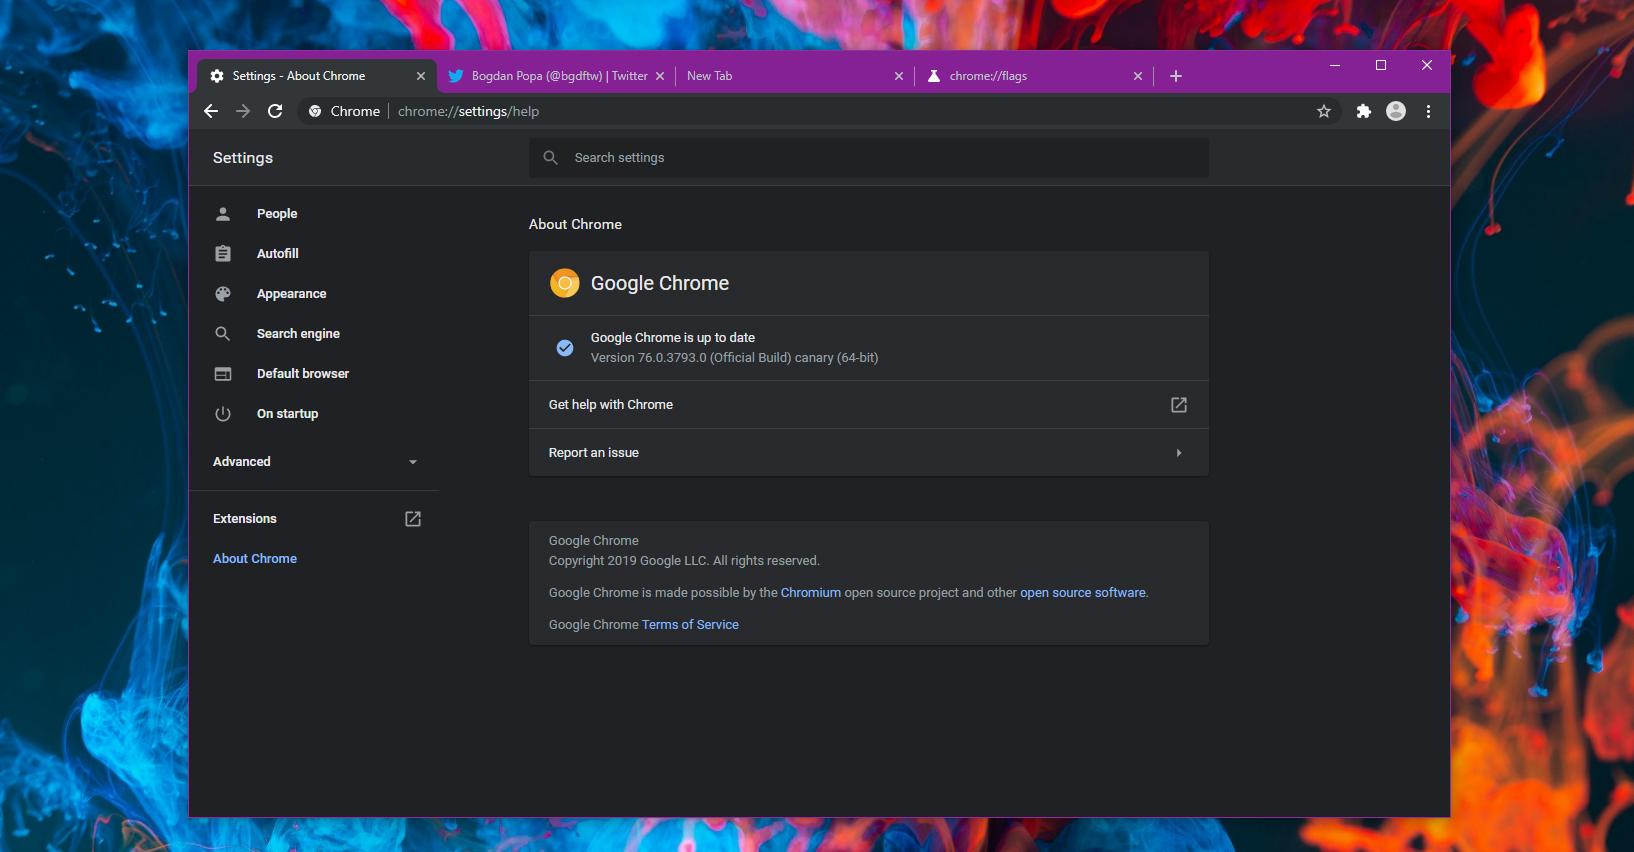 How to Try Out the New Animation on Google Chrome's NTP